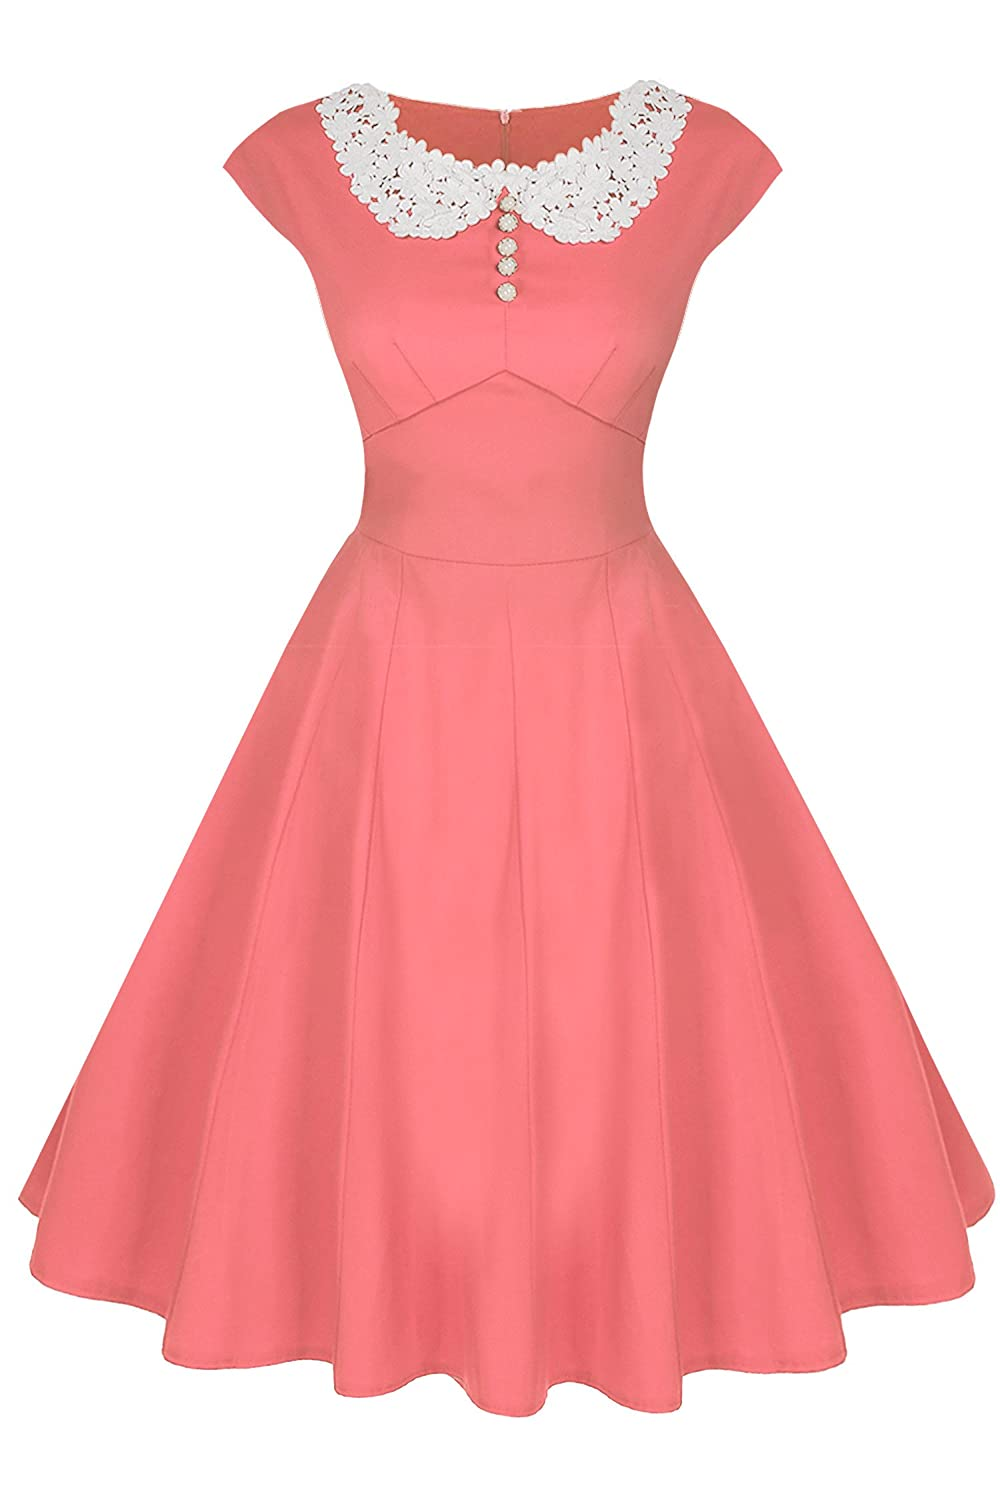 1950s Dresses, 50s Dresses | 1950s Style Dresses Audrey Hepburn Style 1940s Rockabilly Evening Dress $32.99 AT vintagedancer.com